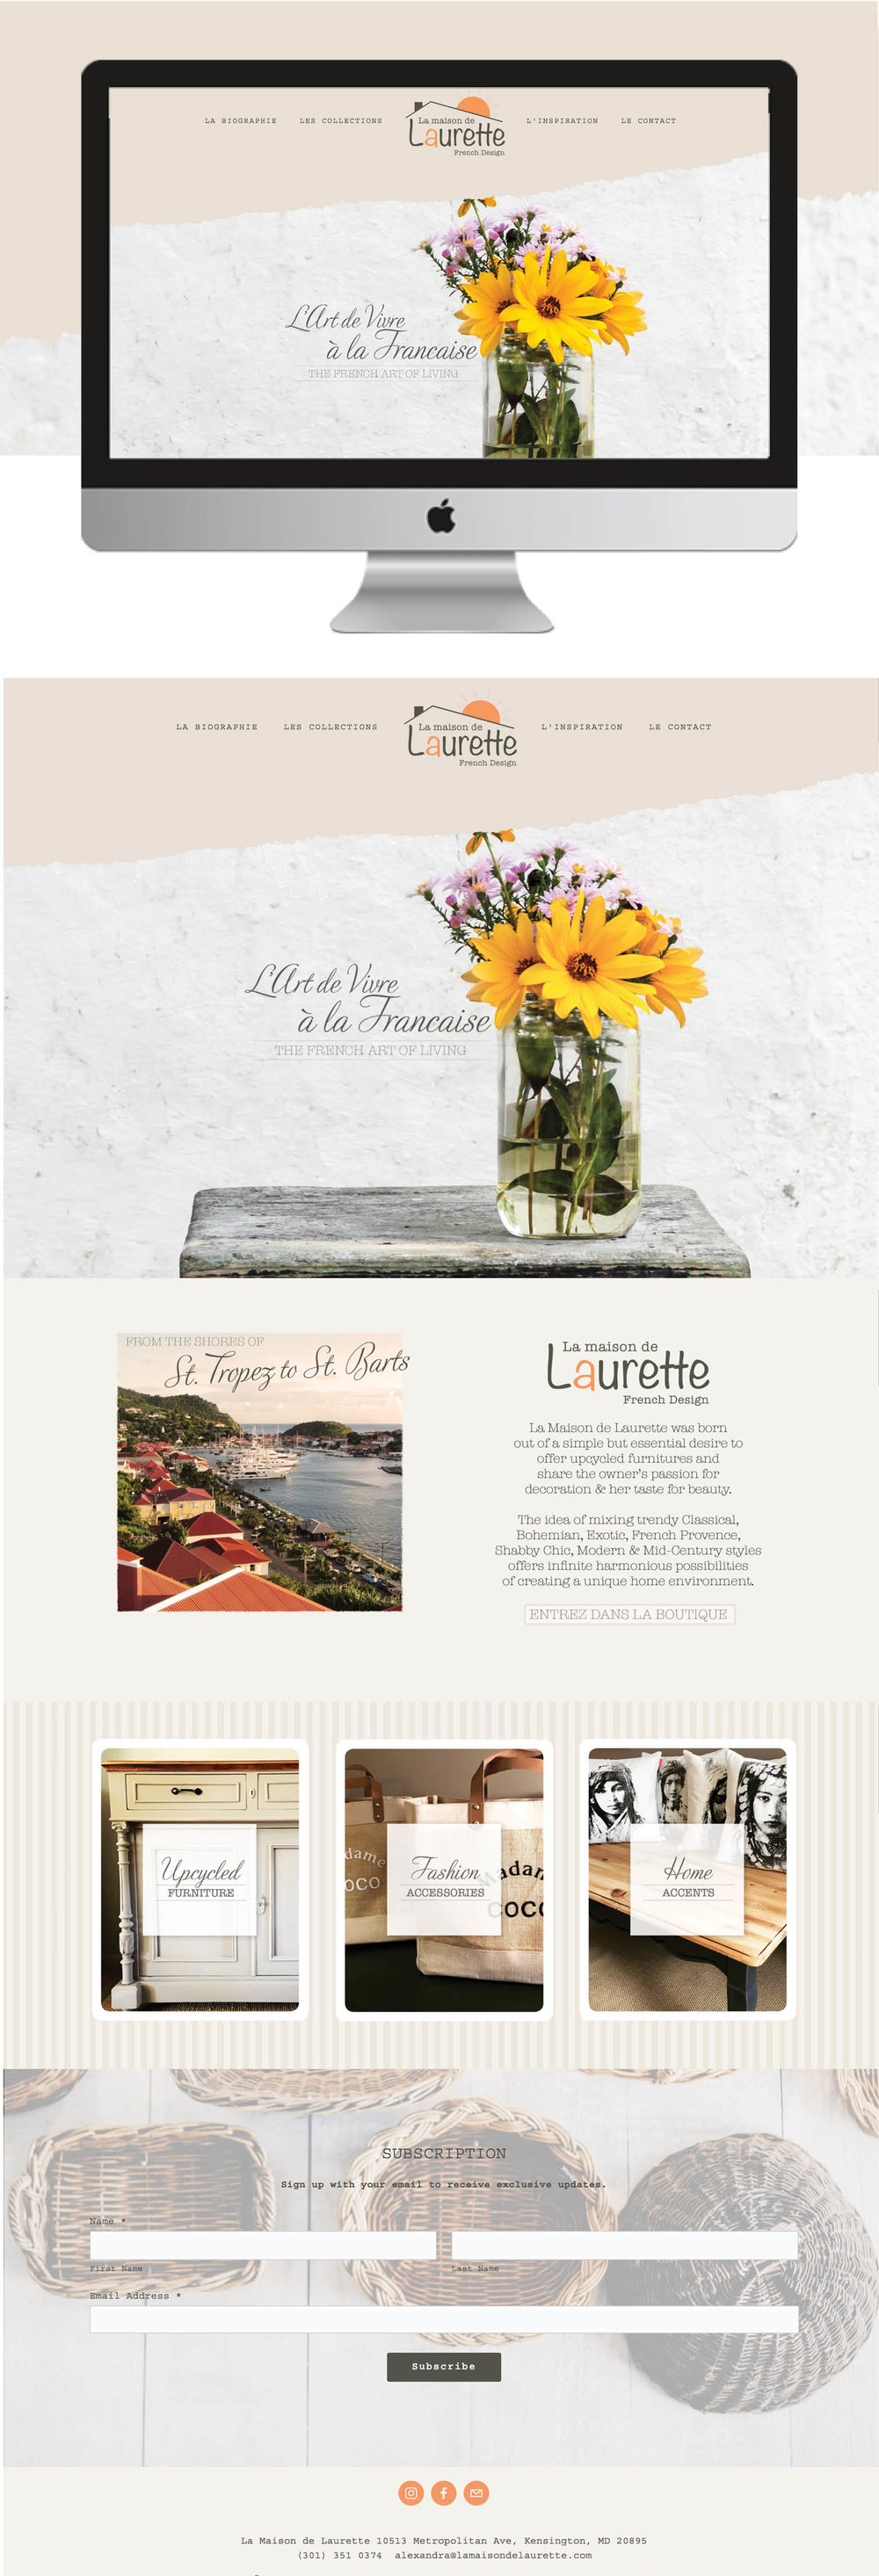 Home Decor and Boutique Squarespace Design for La Maison de Laurette by jgdigital.co